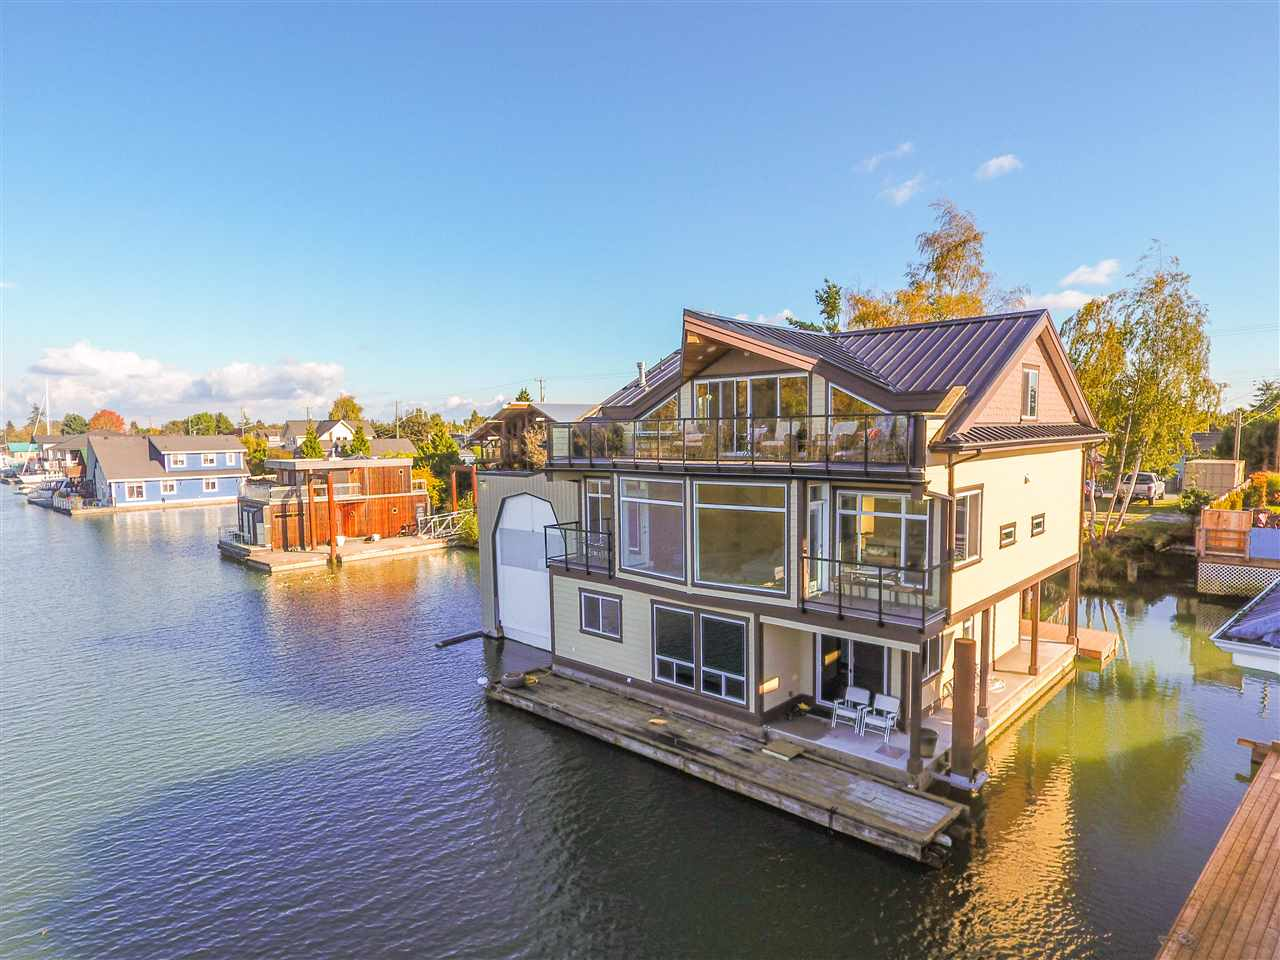 Spectacular waterfront residence just steps to Historic Ladner Village! Set on the banks of the majestic Fraser River, this custom 2016 home offers breathtaking panoramic views, stunning appointments throughout & a private attached boathouse allowing you to moor a 34'+ yacht. This unique property includes a 5,200+ sqft lot w water rights & a 3 bedroom plus loft, 4 bathroom home w over 3,100 sqft of living space. An open concept main level takes advantage of the views w large windows & you will love the gourmet Miele chef's kitchen w oversized island & stone counters. Other highlights incl wide plank wood floors, privacy glass & motorized blinds & luxurious master w dream ensuite. Bonus: opportunity to build a second house on the property & detached 3 car garage. Inquire for more details!